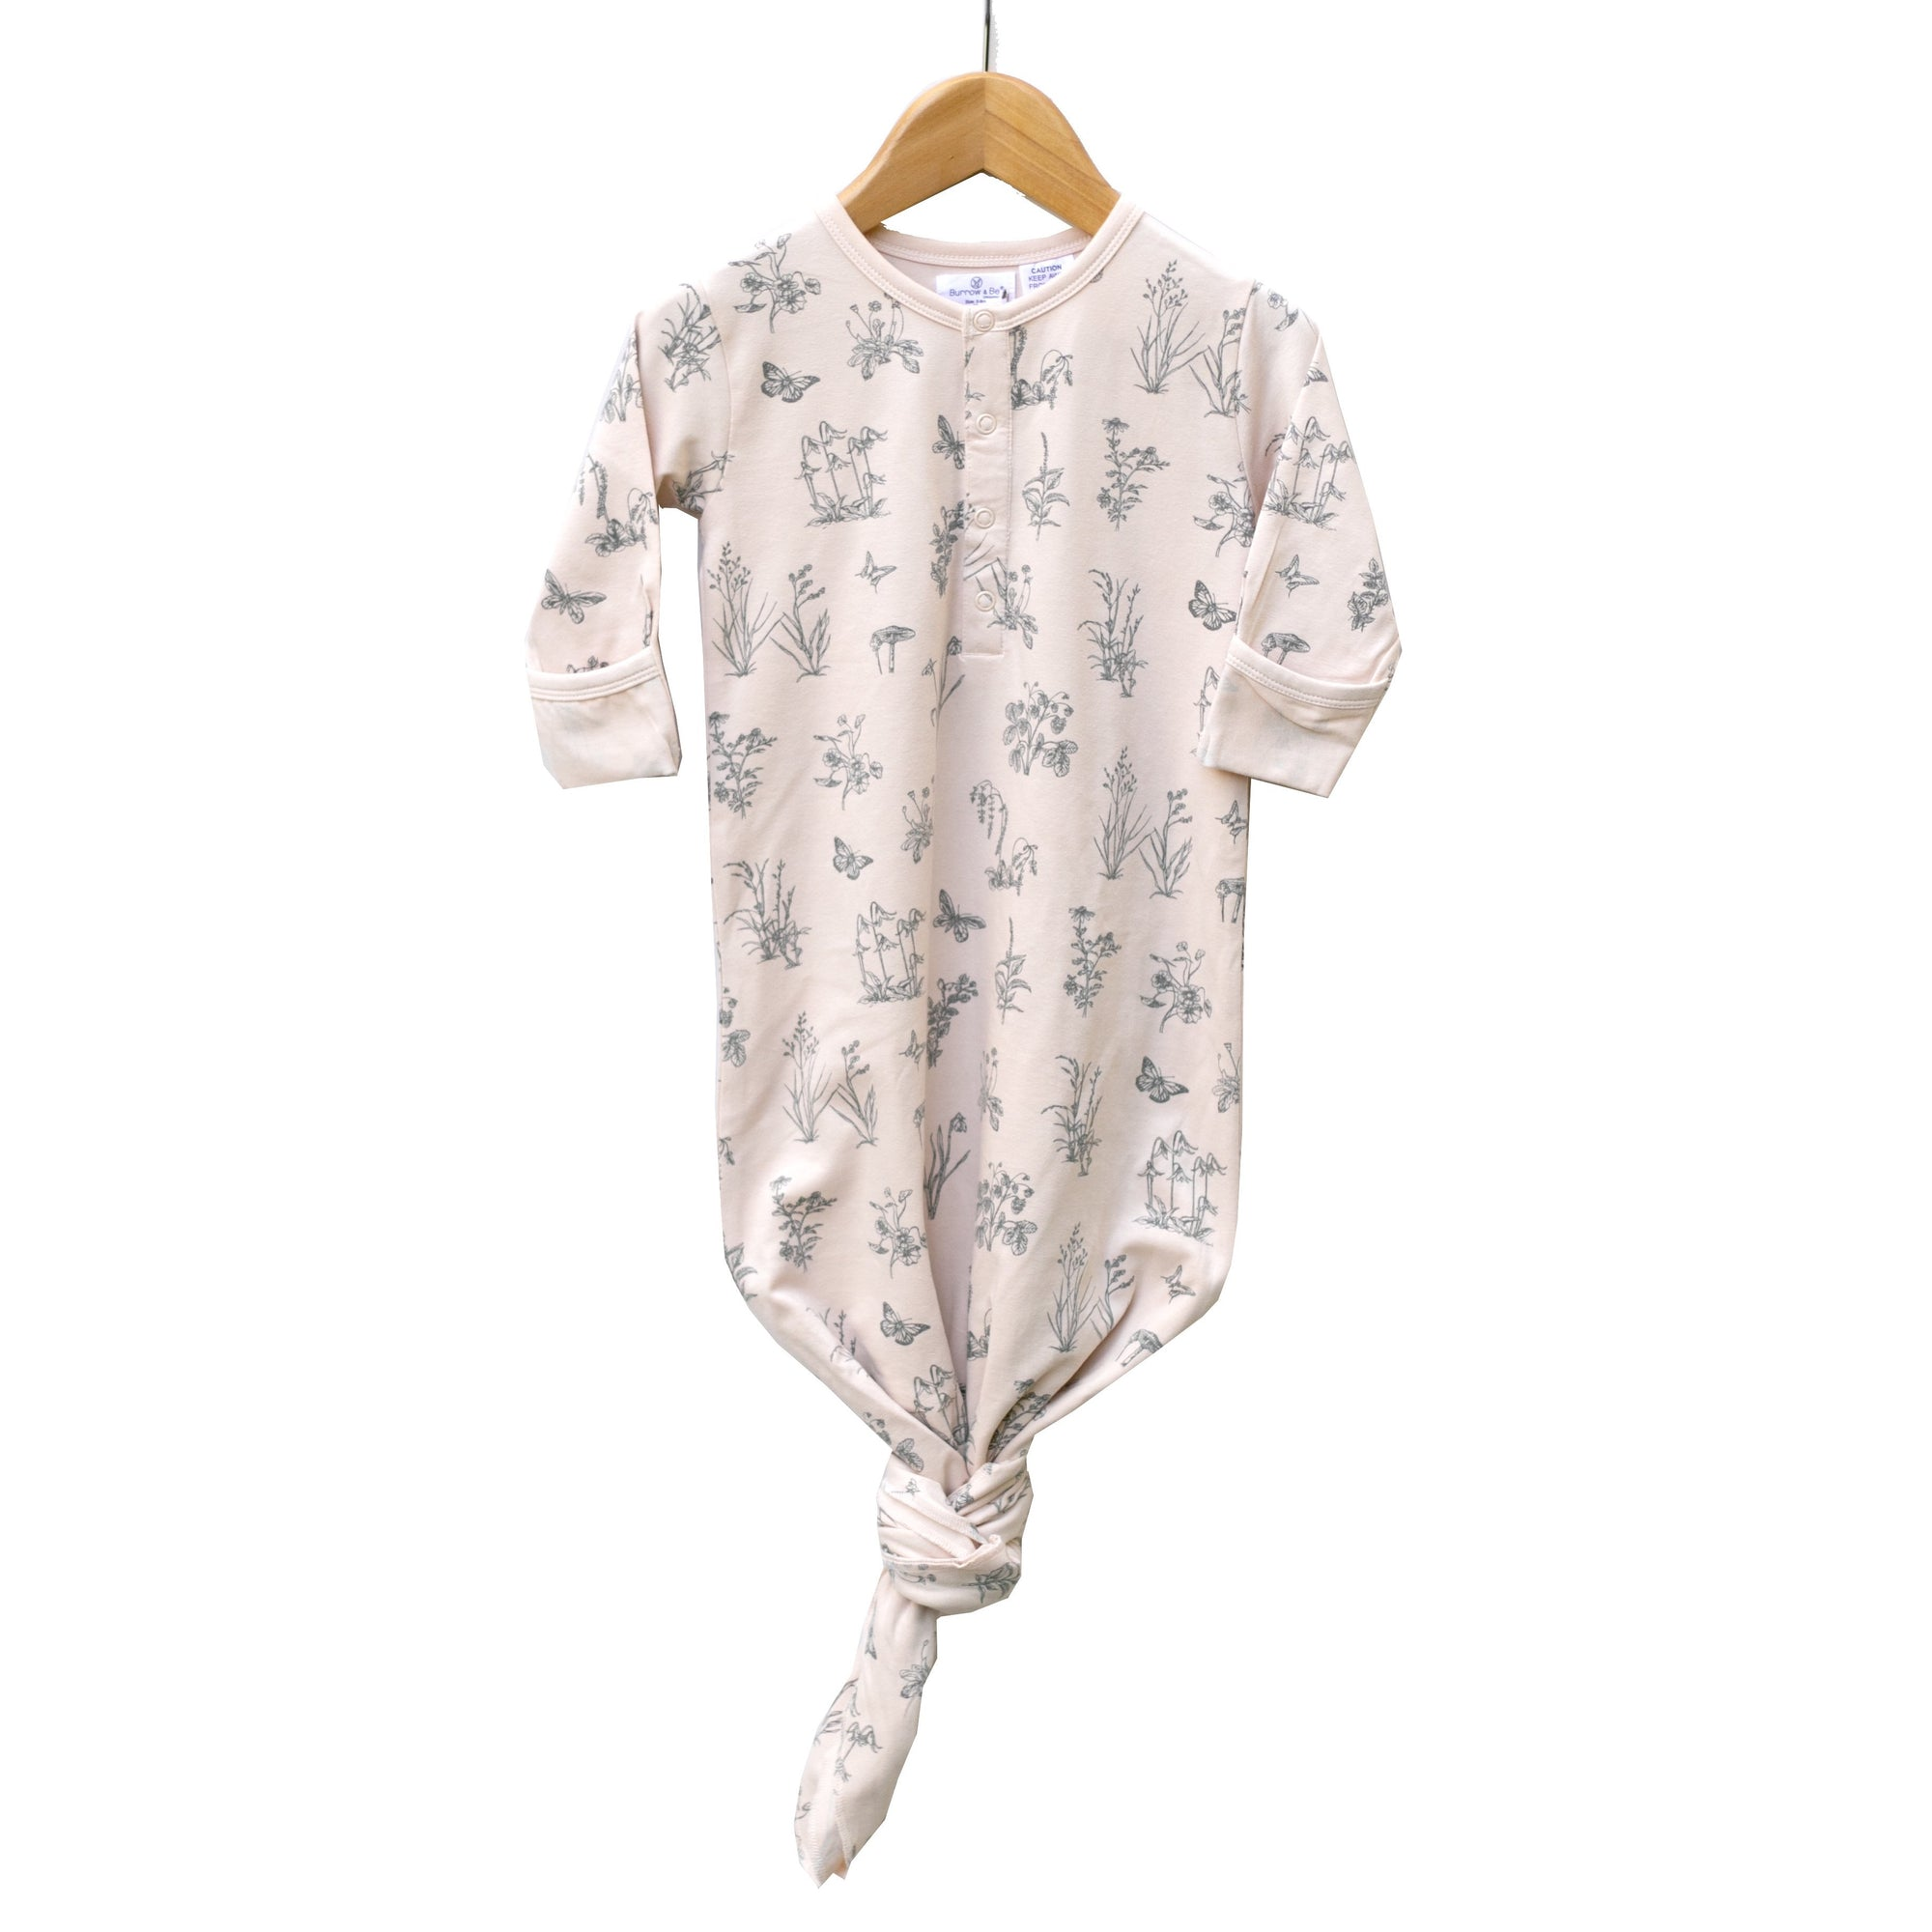 Burrow & Be Sleep Gown in Blush Meadow